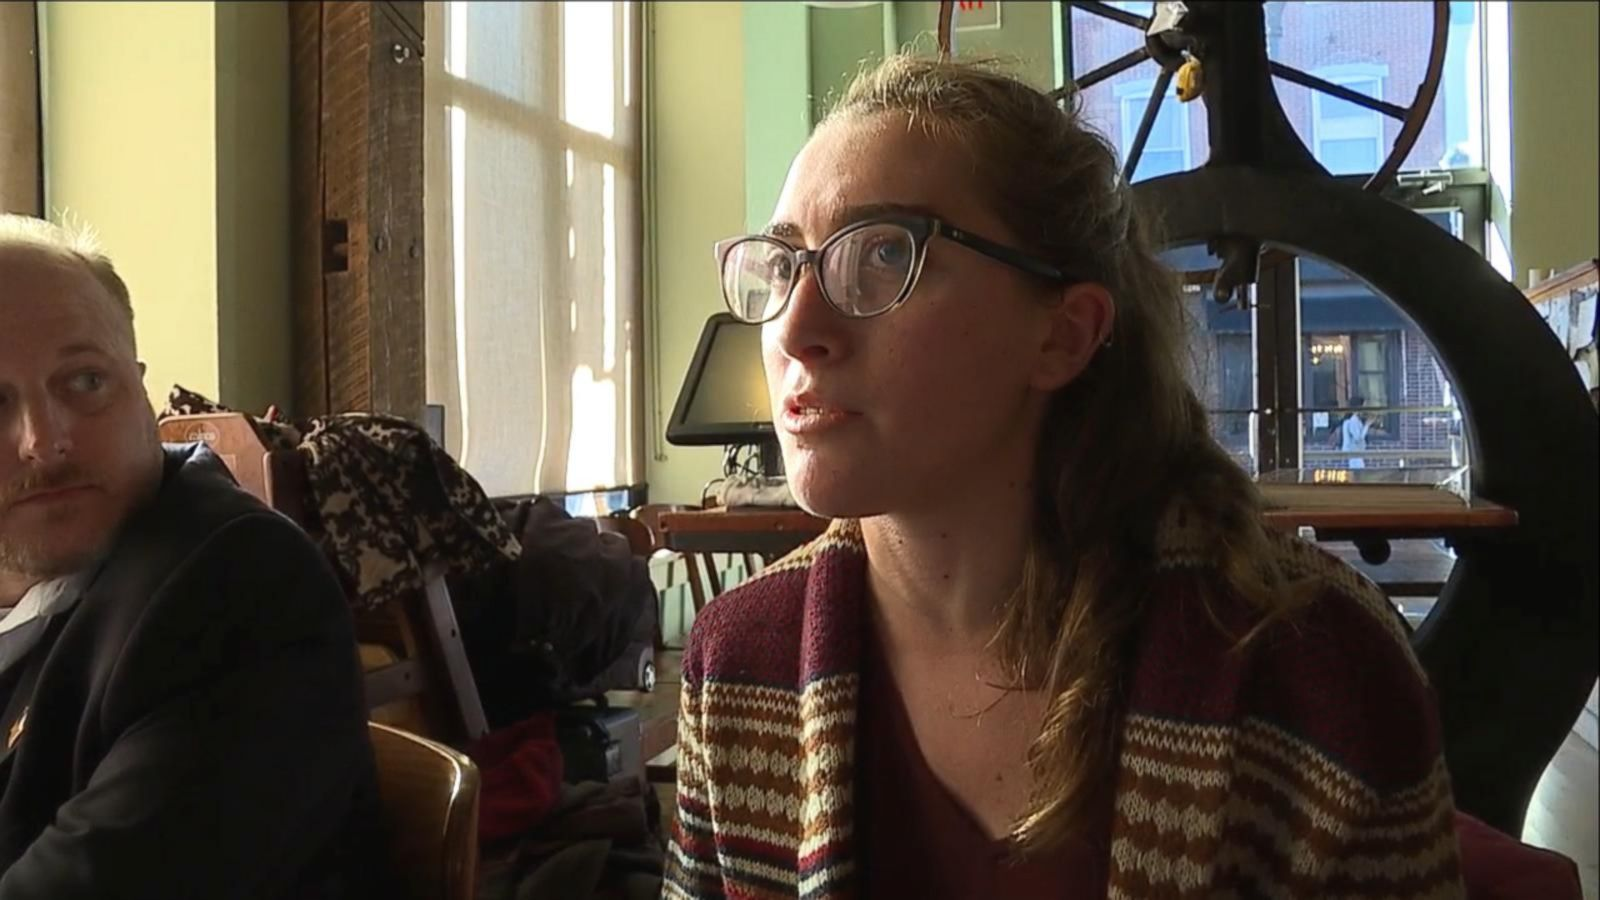 VIDEO: On Trump vs. Clinton, Women Find Issues with Both